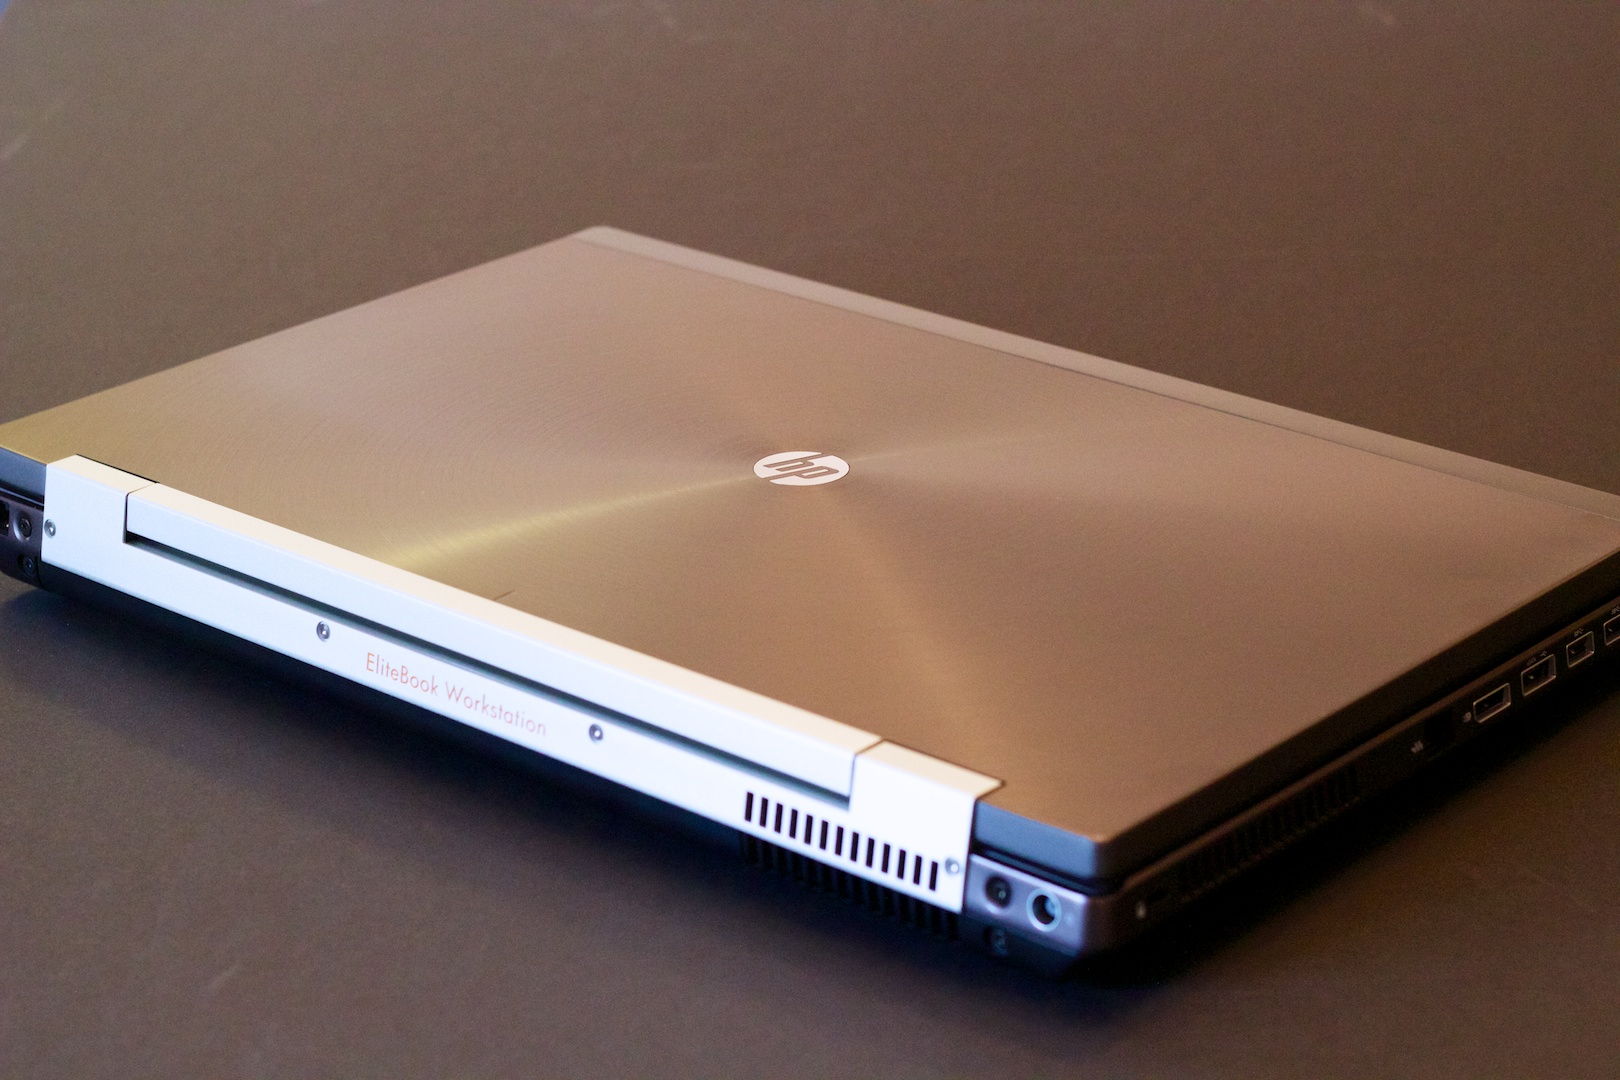 The HP 8770w 17-inch lapzilla.